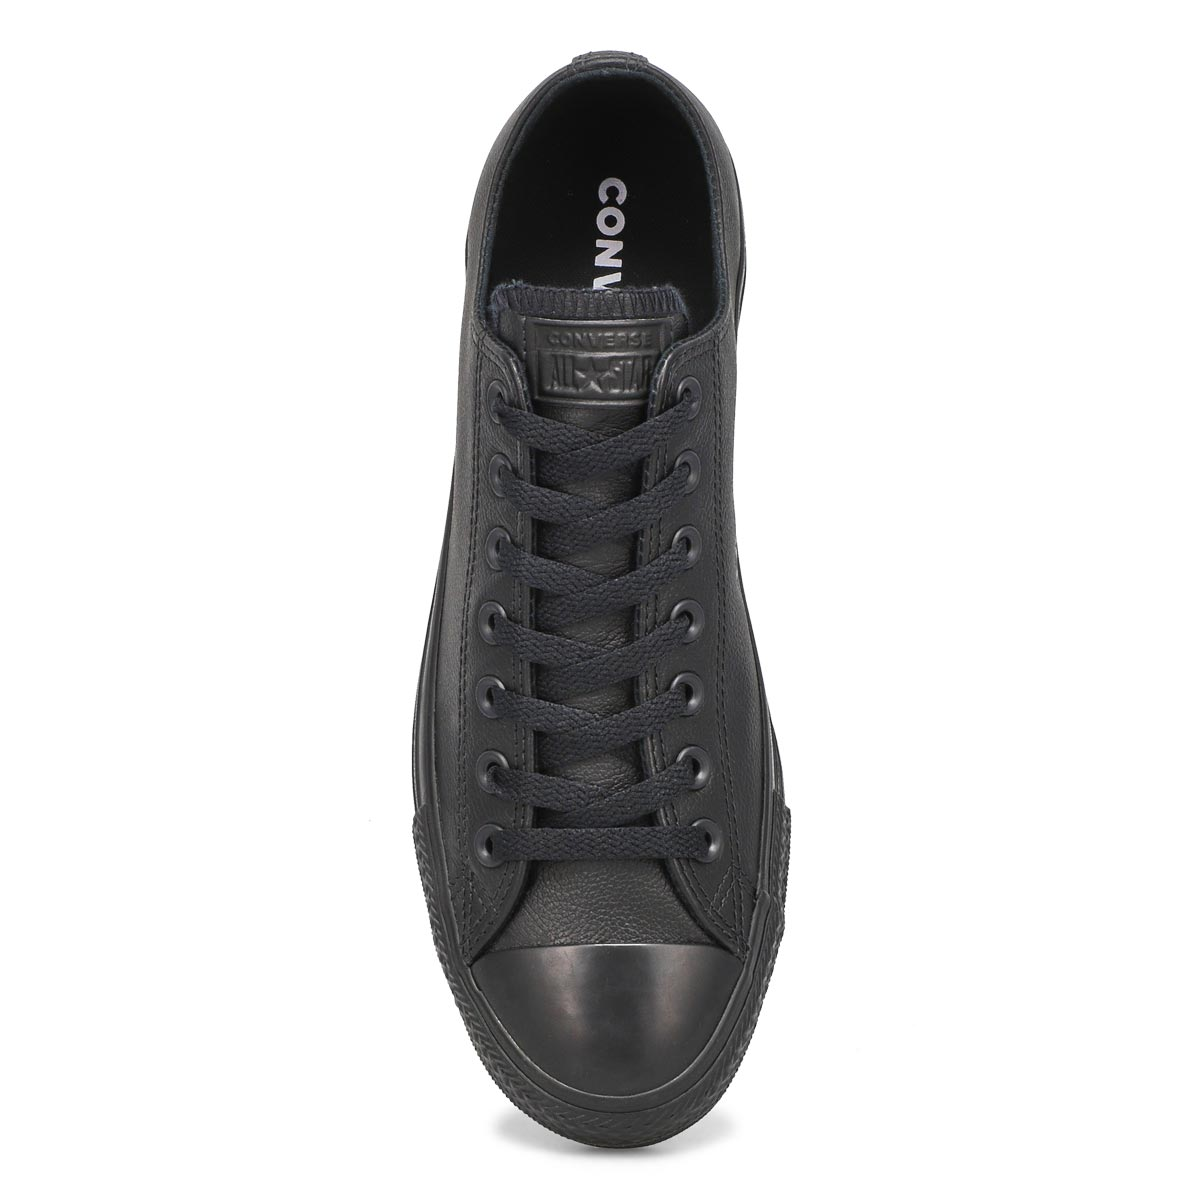 Mns CTAS Leather Ox blk mono snkr